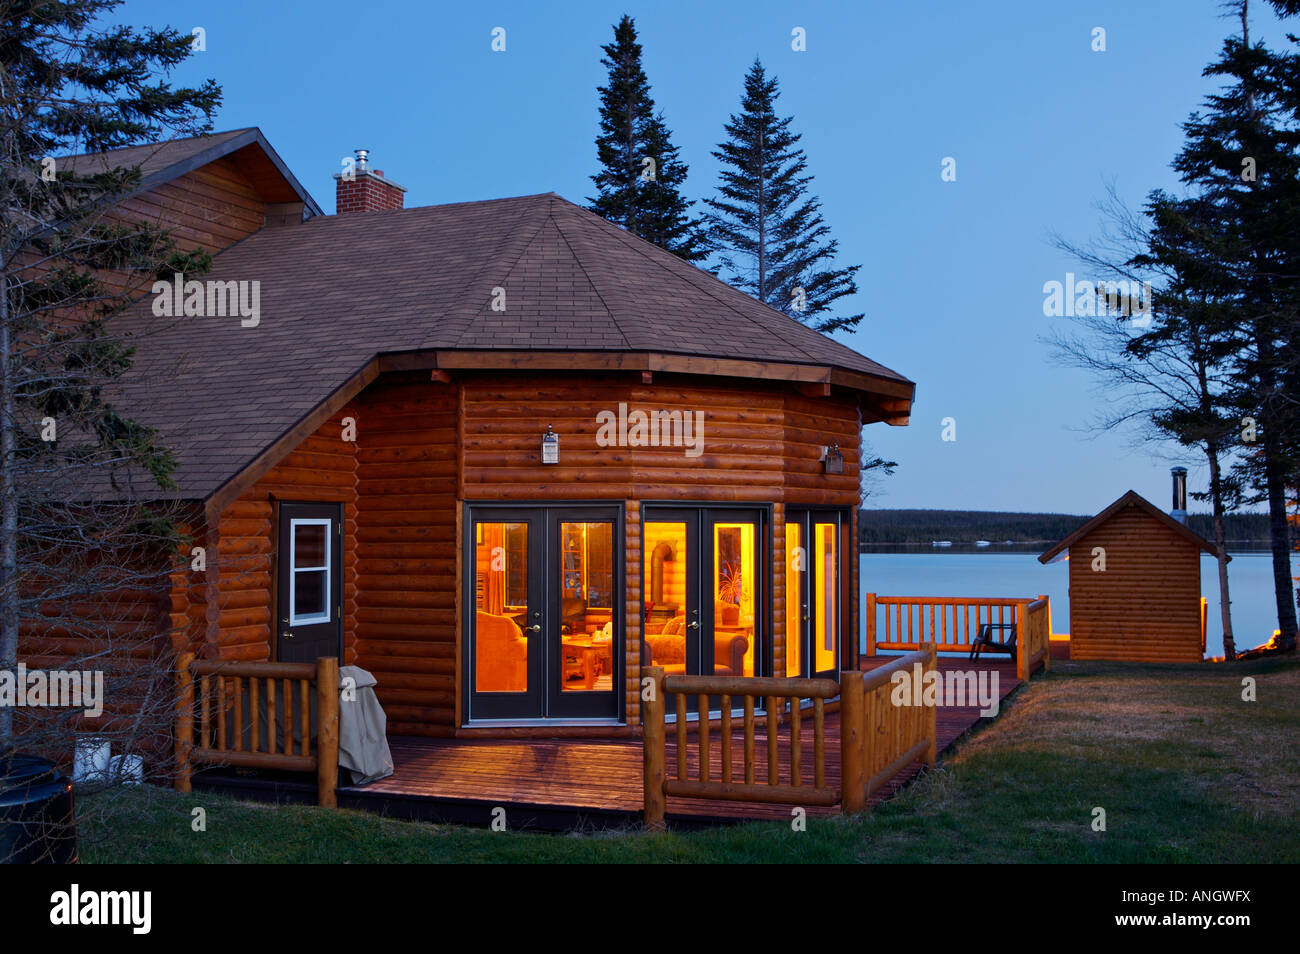 Tuckamore Lodge, Main Brook, Viking Trail, Northern Peninsula, Newfoundland & Labrador, Canada. - Stock Image